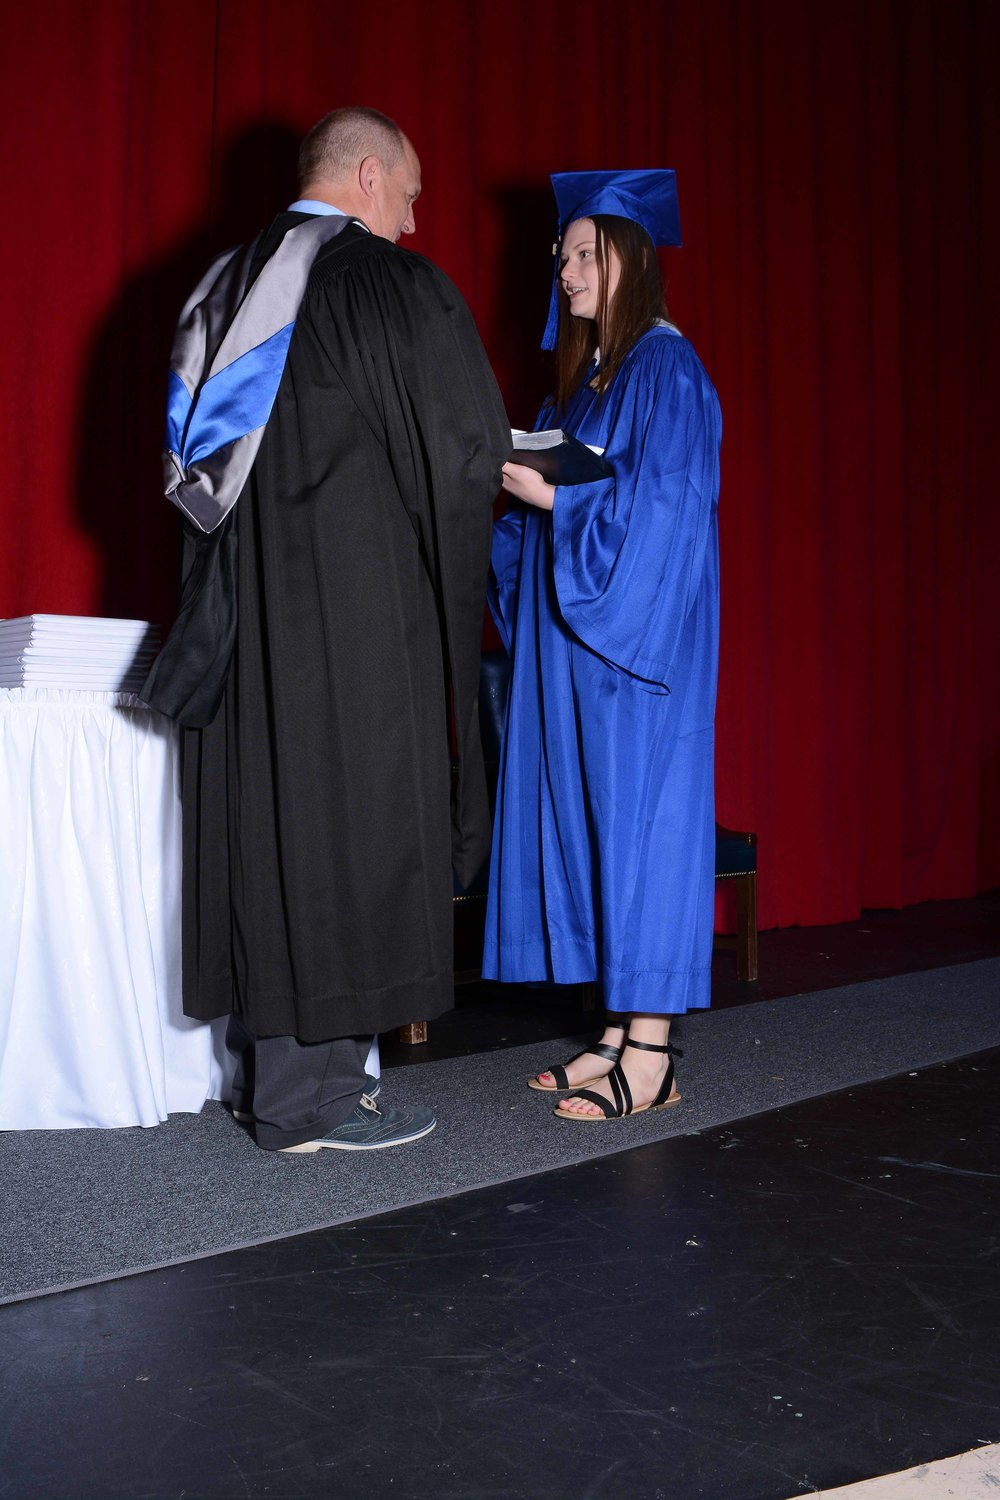 May14 Commencement109.jpg